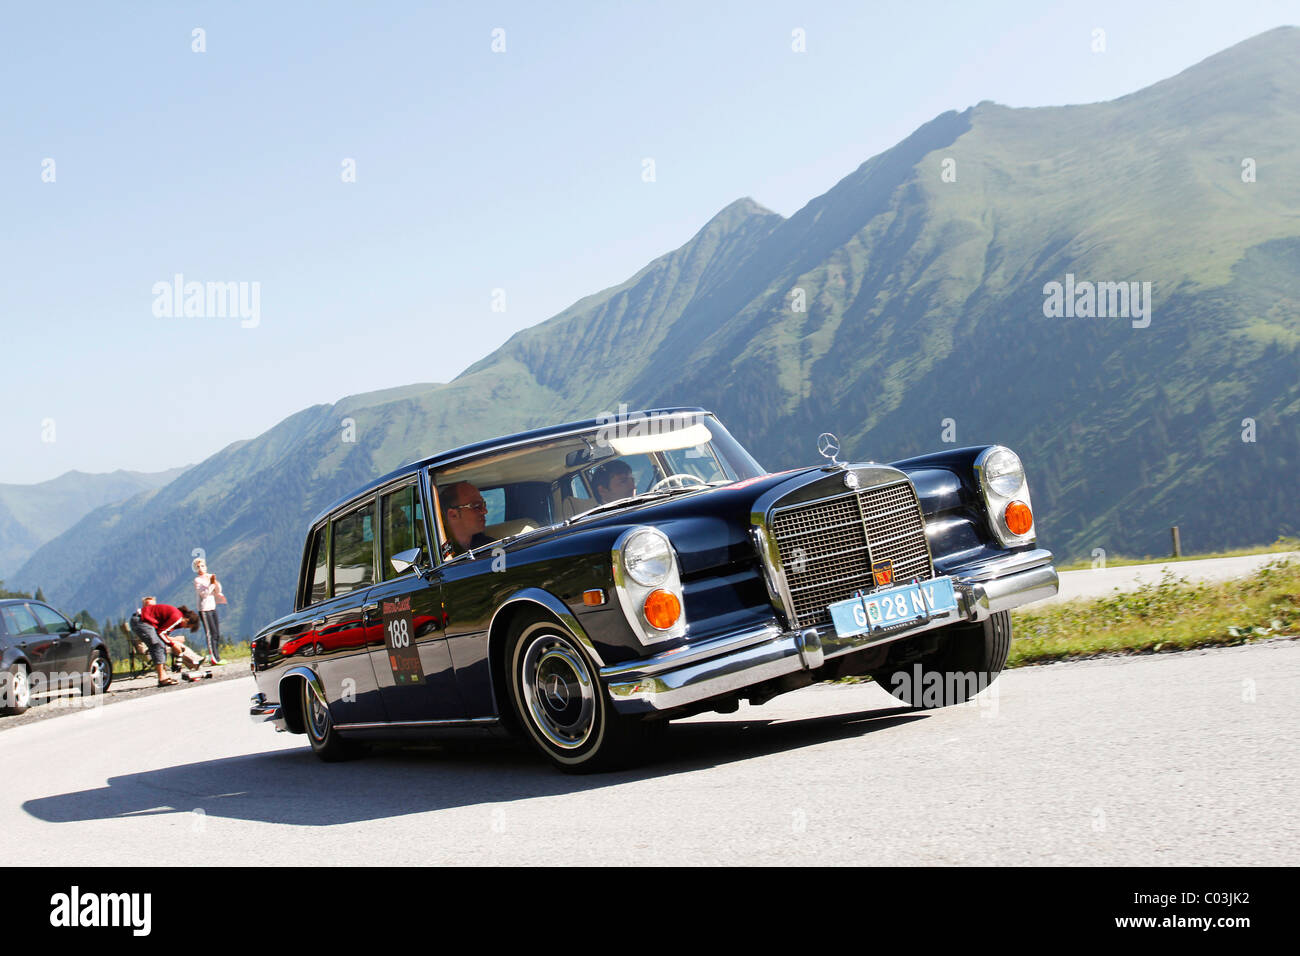 Mercedes-Benz 600 Pullman, built in 1968, Soelkpass, Ennstal ...